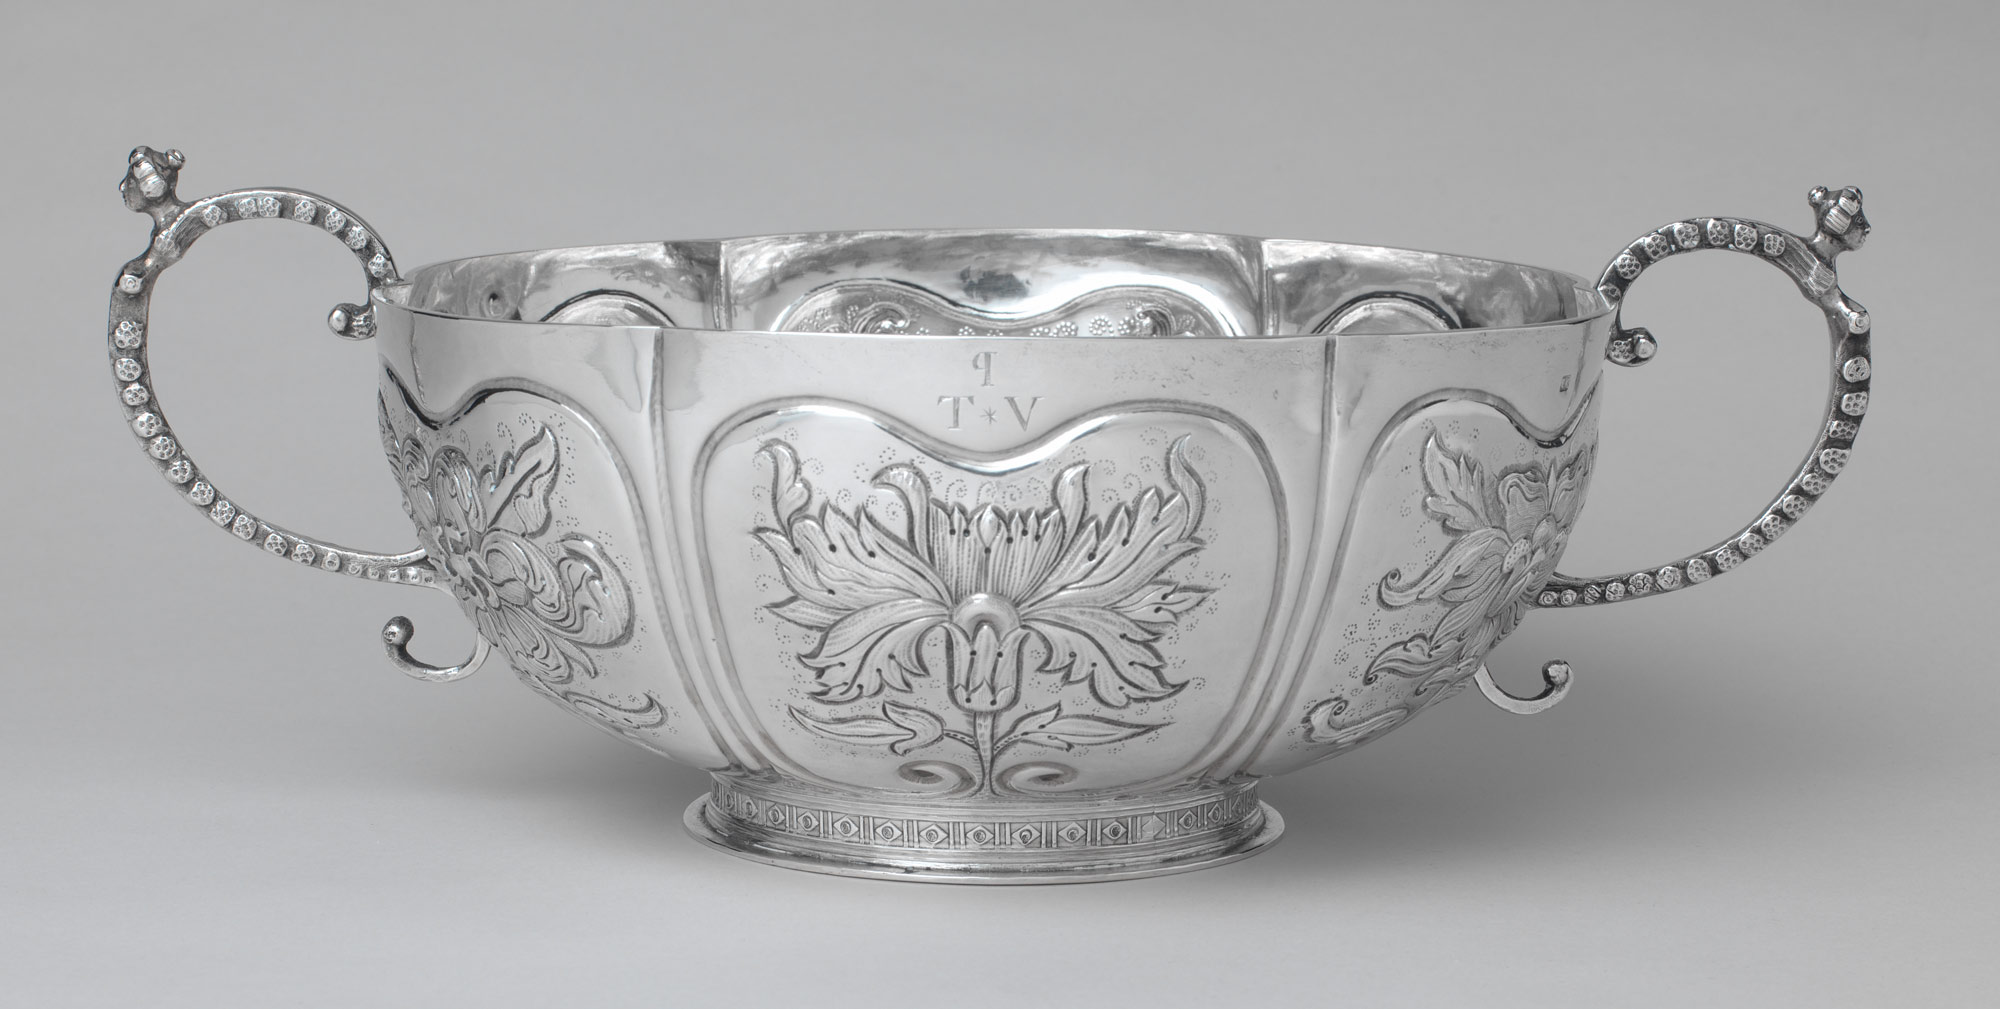 Two-handled bowl